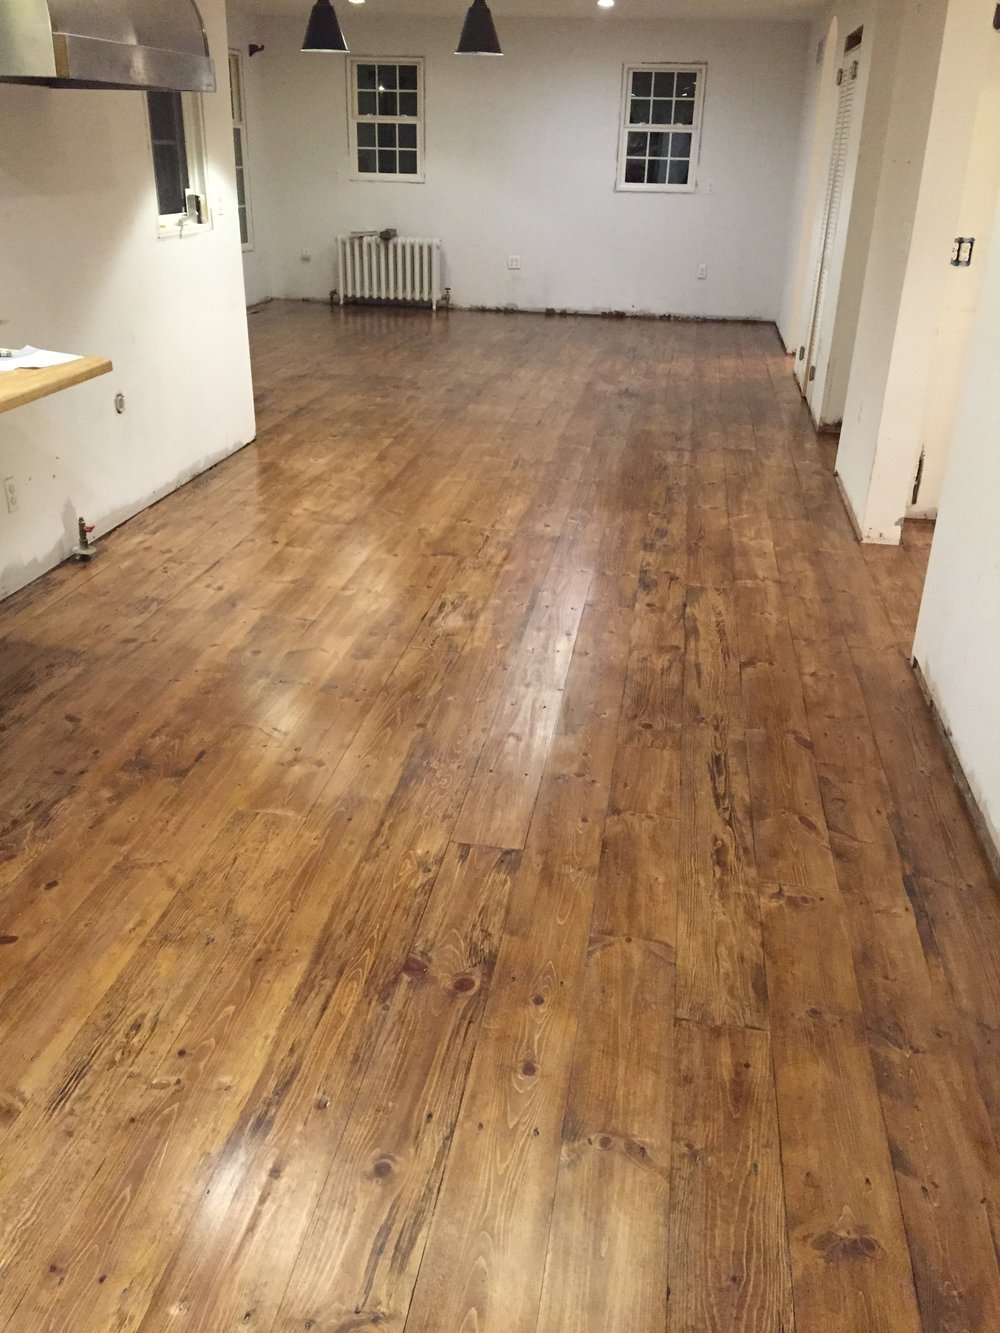 After staining and a few coats of polyurethane, the floors were finished.